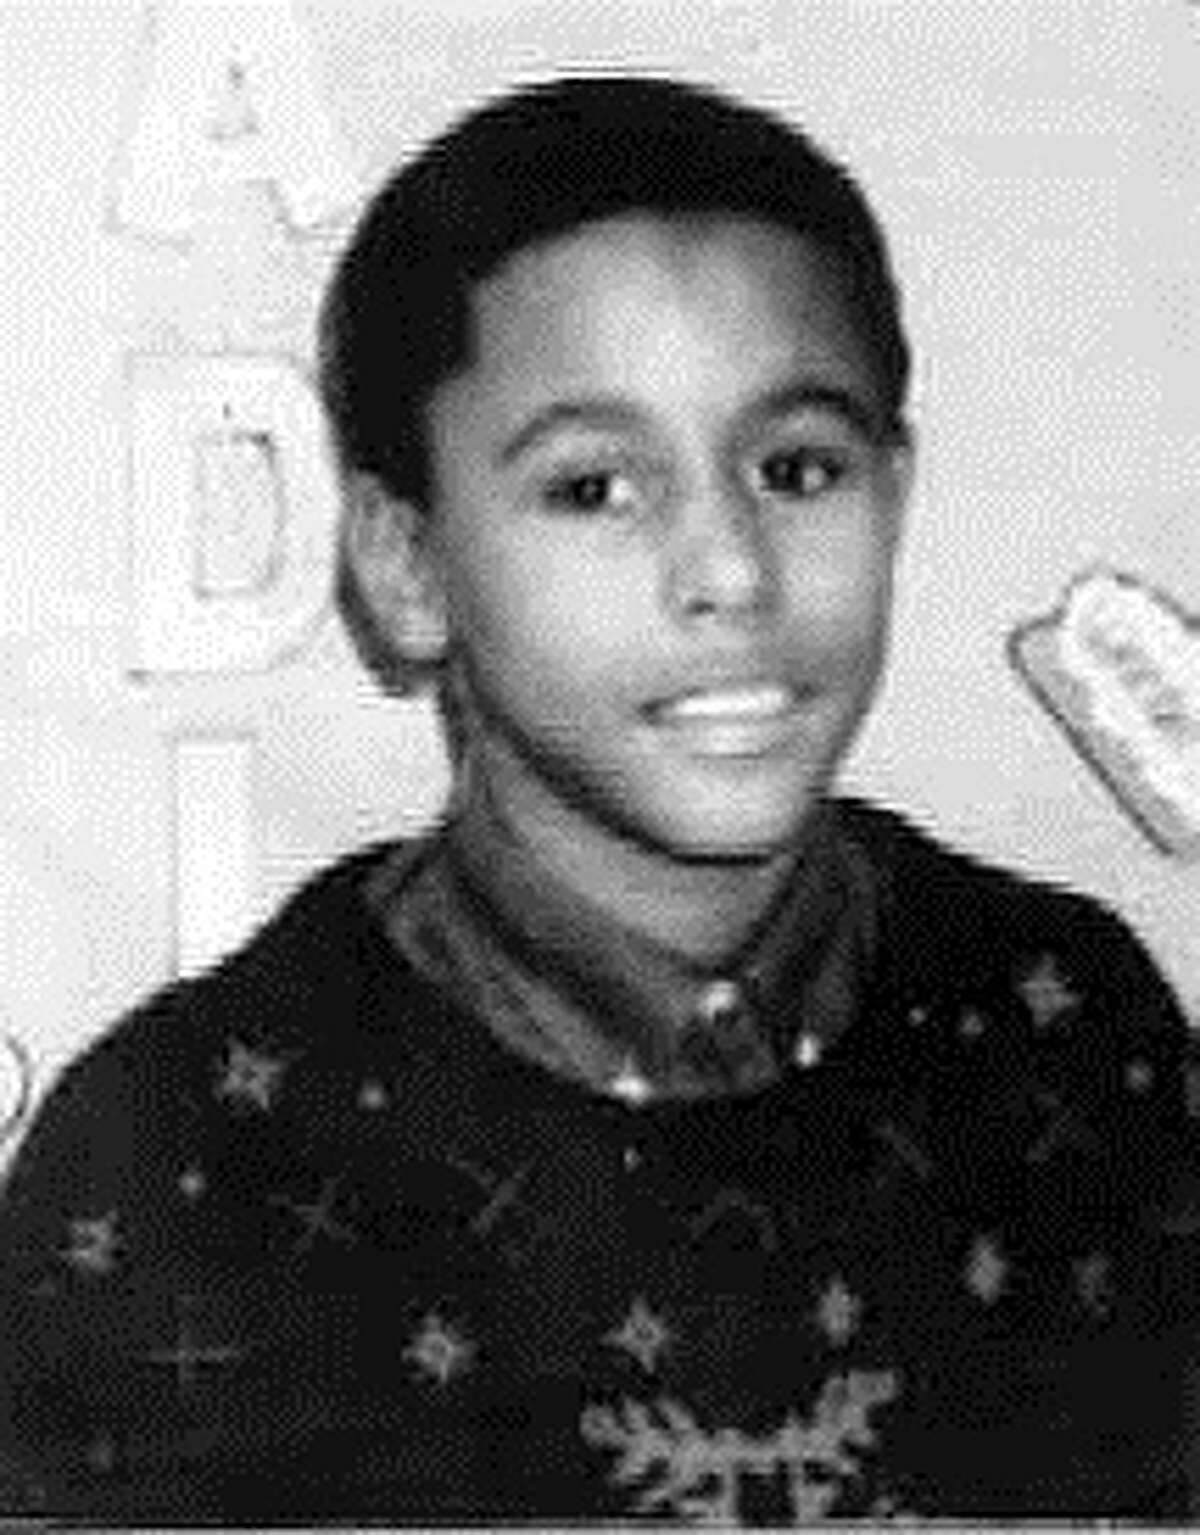 """Edward """"Mitt"""" Croley was 14 years old when he vanished from the streets of West Hill in 1991. His body was found in Selkirk, with his skull smashed, a year later but his killer has never been caught."""